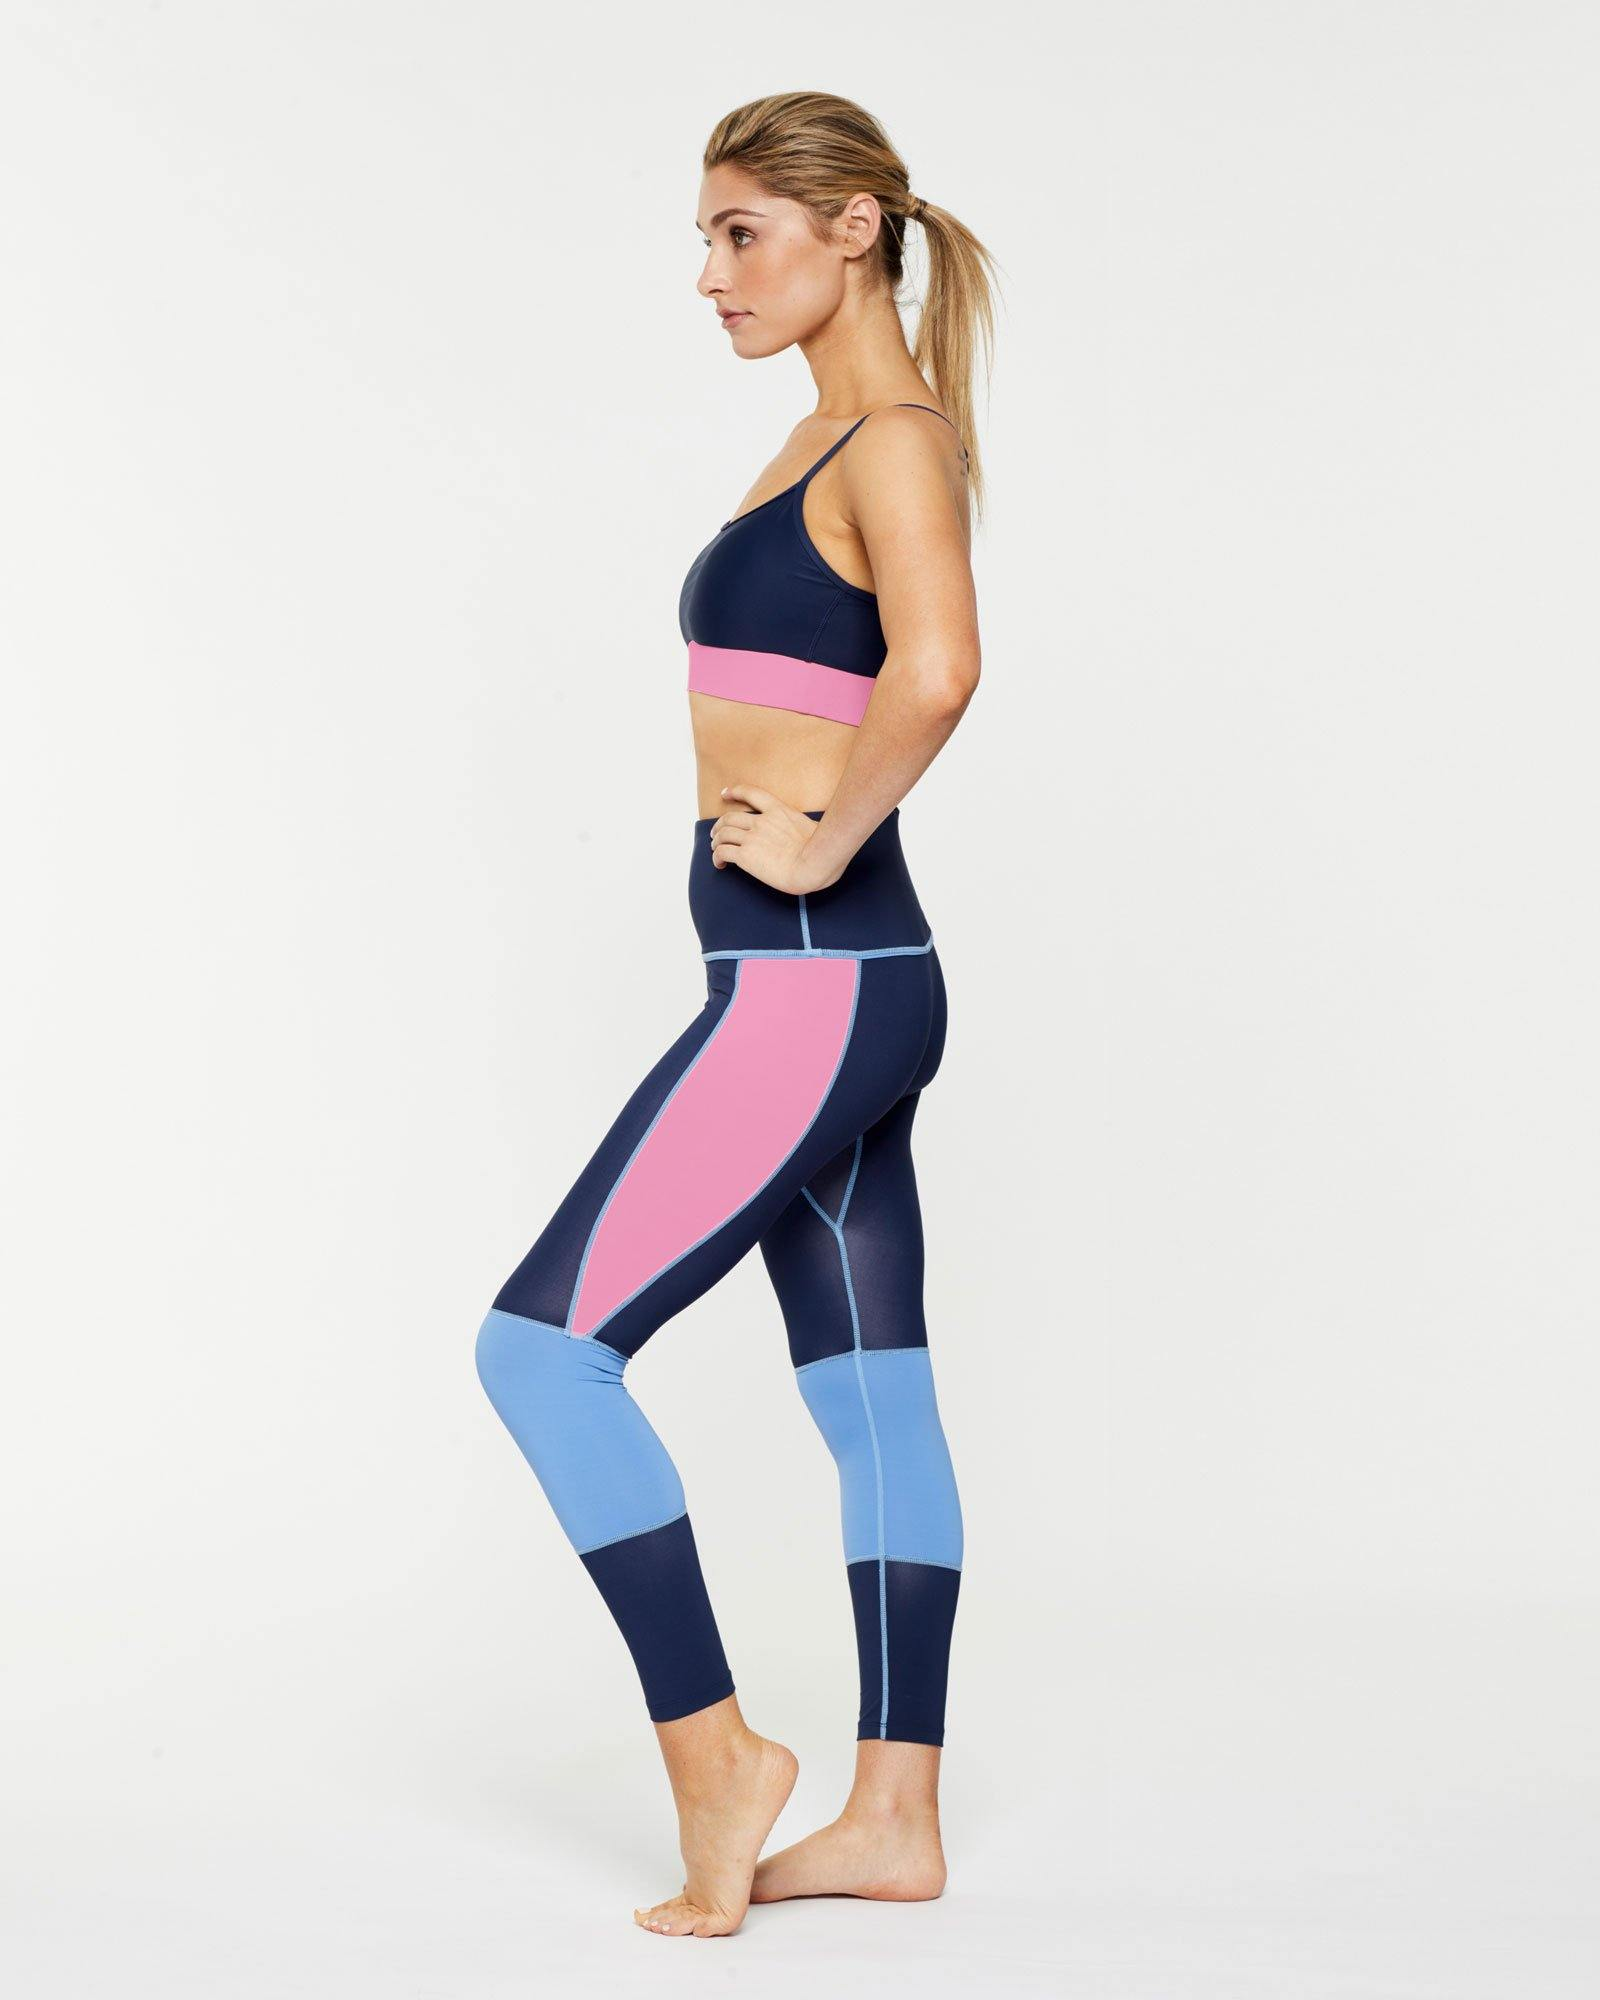 Femininely INFRASPINATUS Navy ACTIVE TOP WITH CONTRAST pink UNDER BUST BAND & ADJUSTABLE STRAPS, WORN WITH GRACILIS 7/8 LENGTH LEGGING, side VIEW, great for Pilates and in-studio workouts